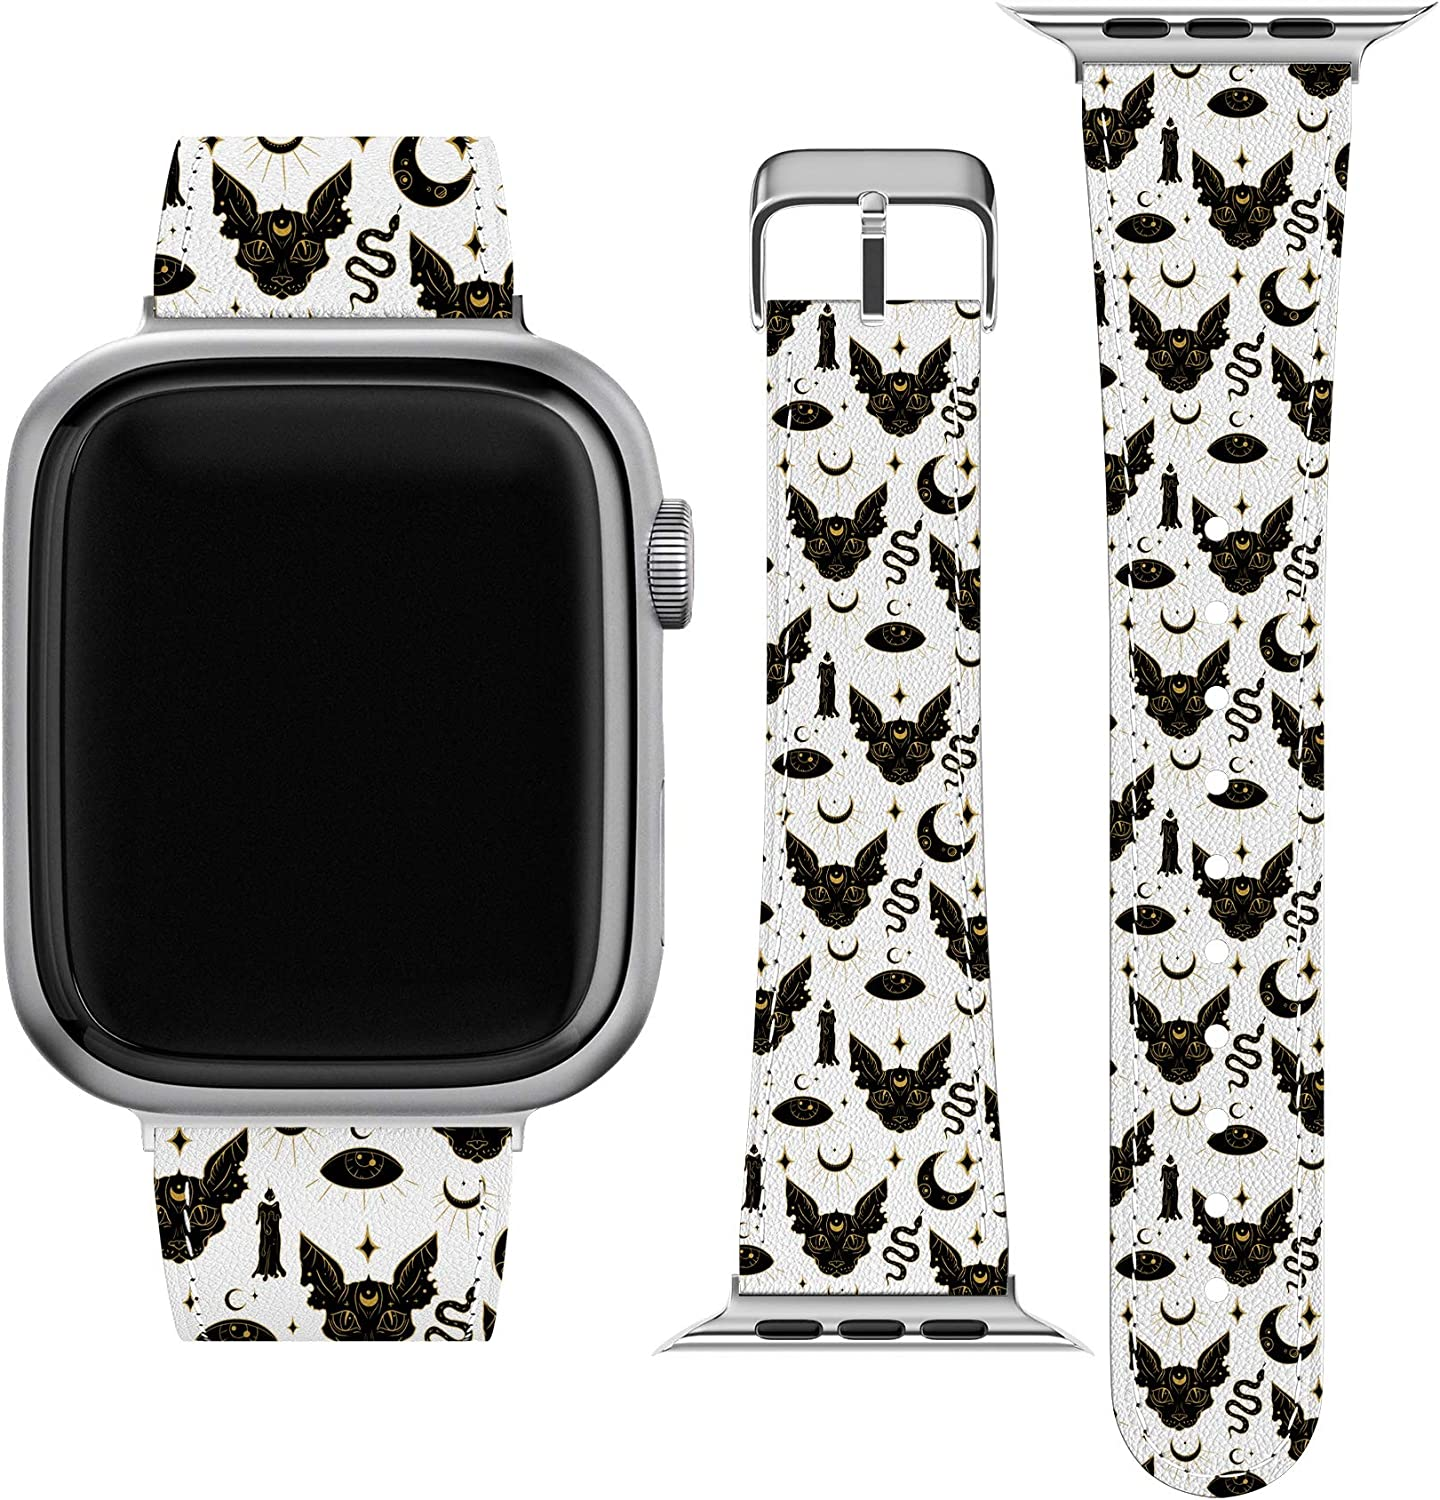 Lex Altern Band Compatible with Apple Watch Series 6 SE 5 4 3 2 1 38mm 40mm 42mm 44mm Print Occult Wristband Thin Sphynx Cat Stylish Eye Magic Durable Mystic Vegan Leather Witch Slim Strap wh311